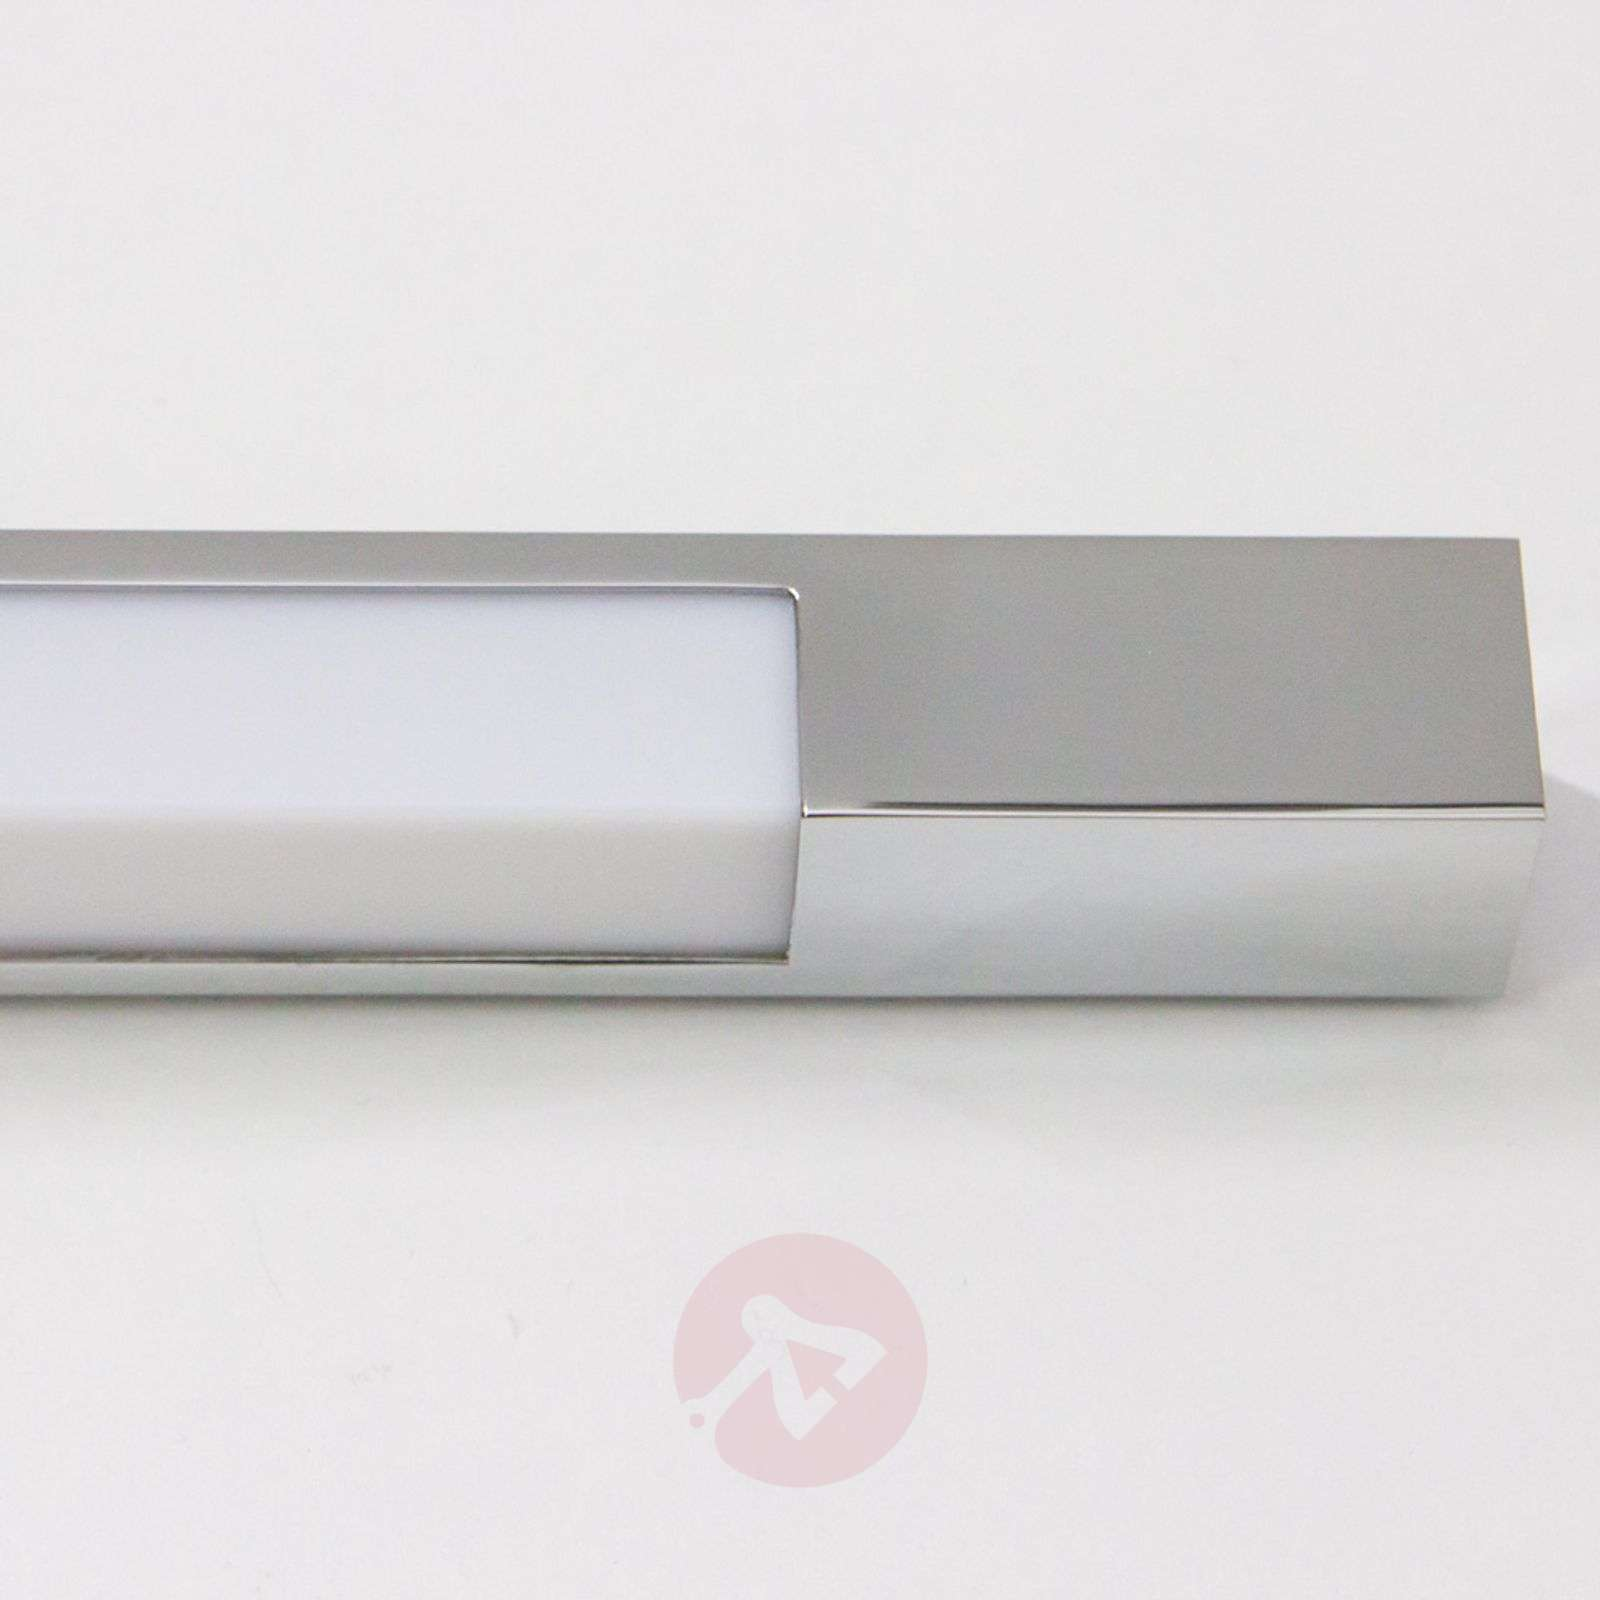 Modern Lievan mirror lamp with LEDs-9641058-02